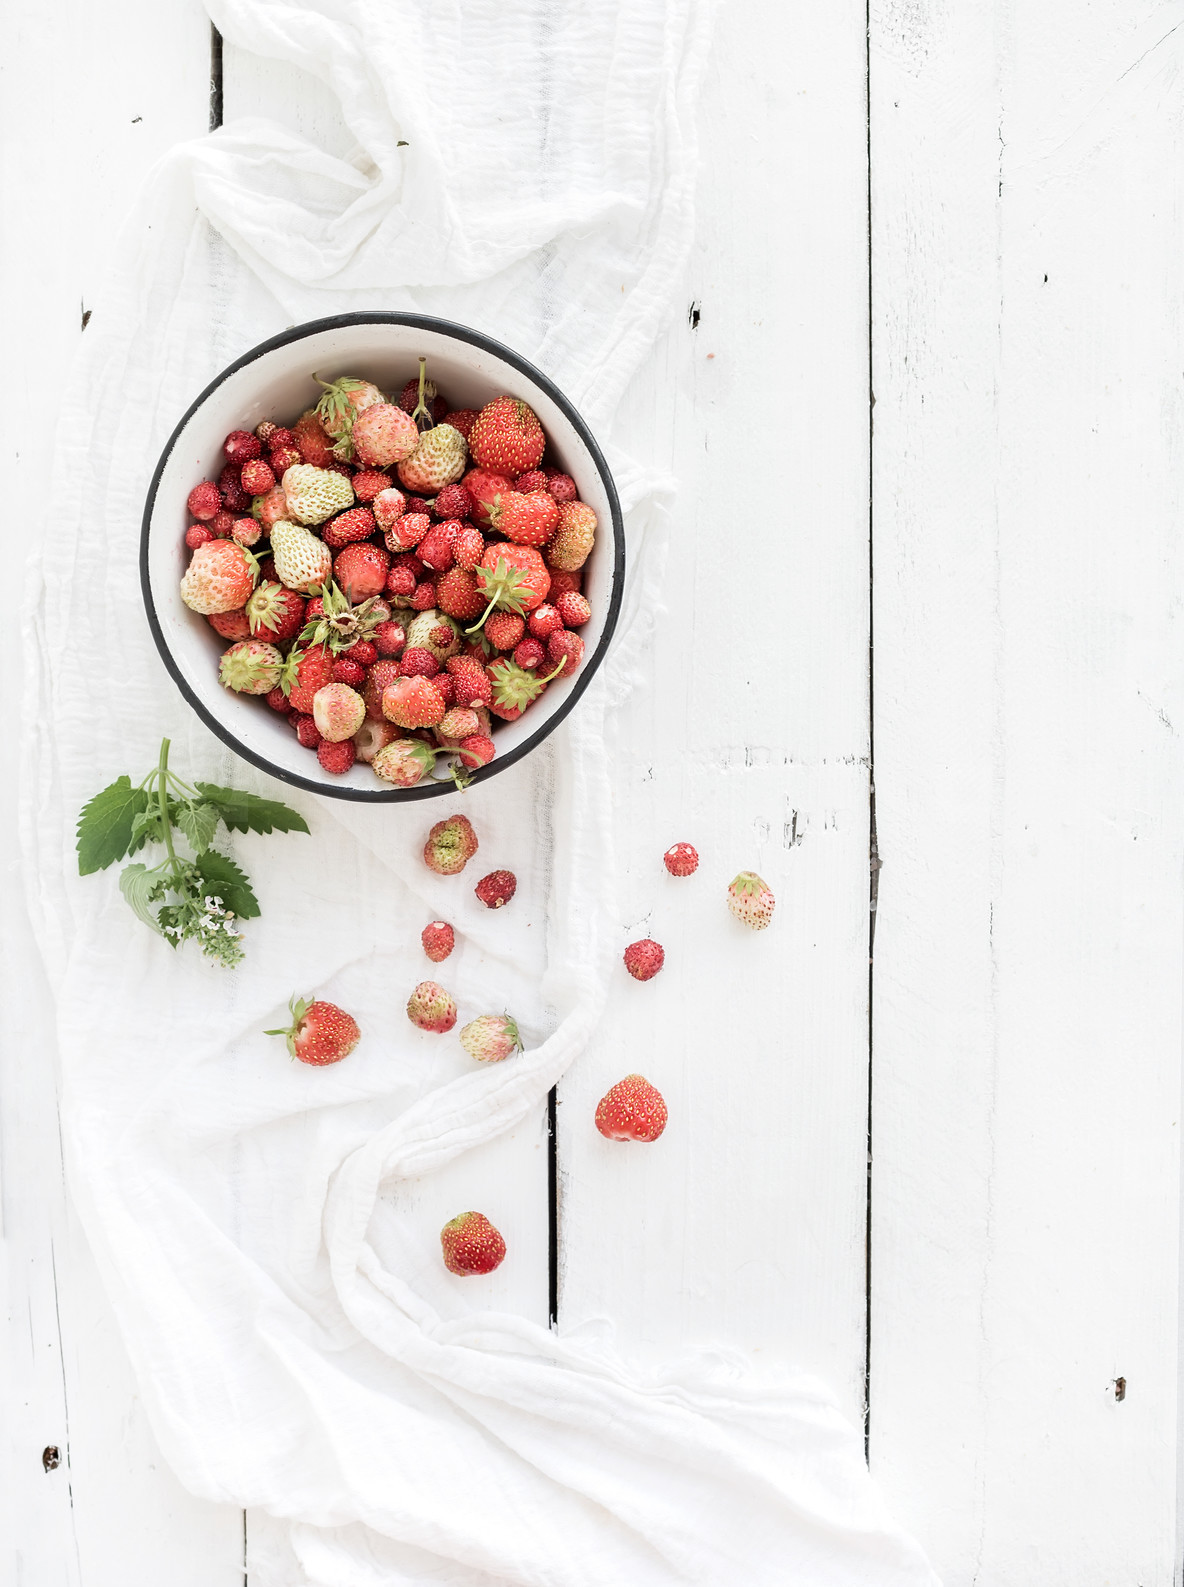 Wild strawberries in rustic metal bowl on white wooden background  top view